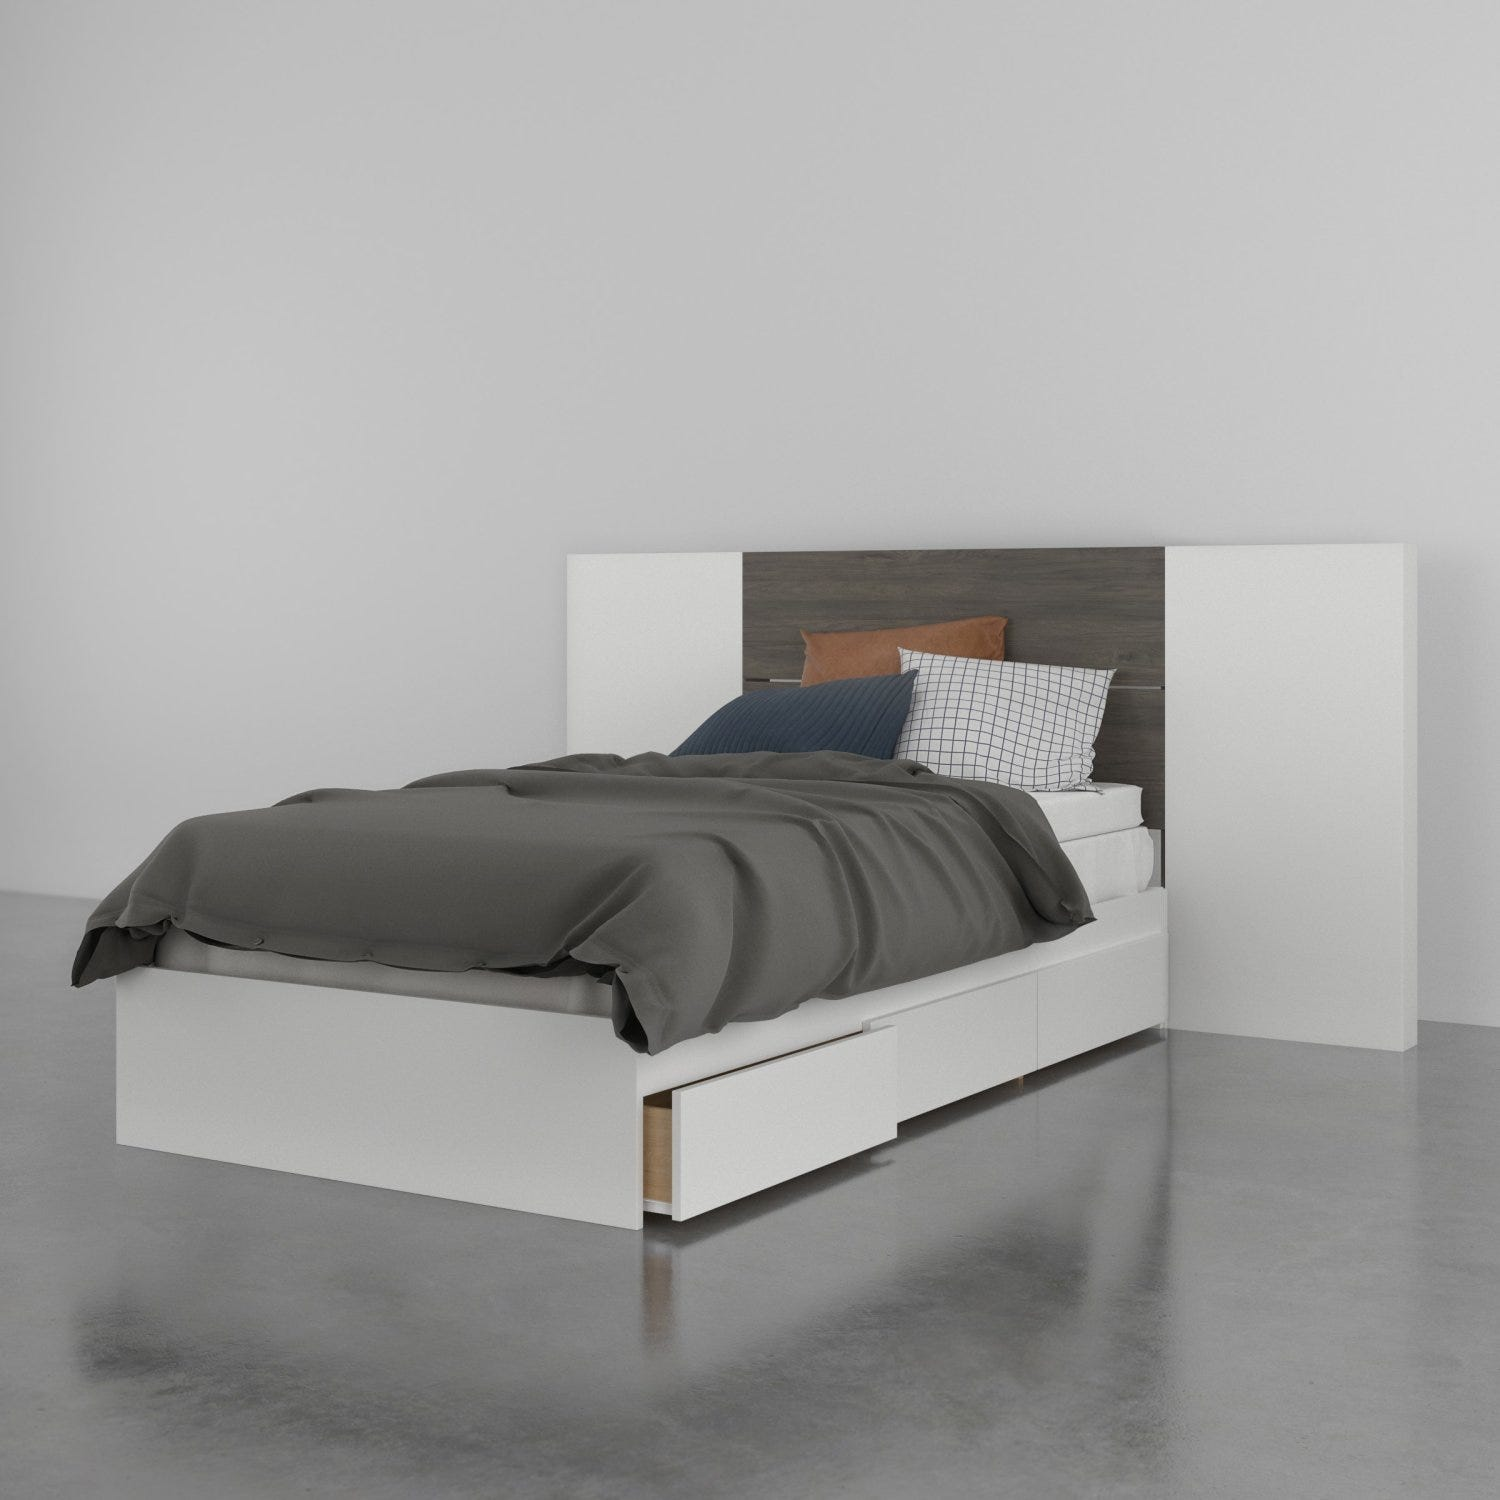 Lily 3 Piece Twin Size Bedroom Set, Bark Grey and White